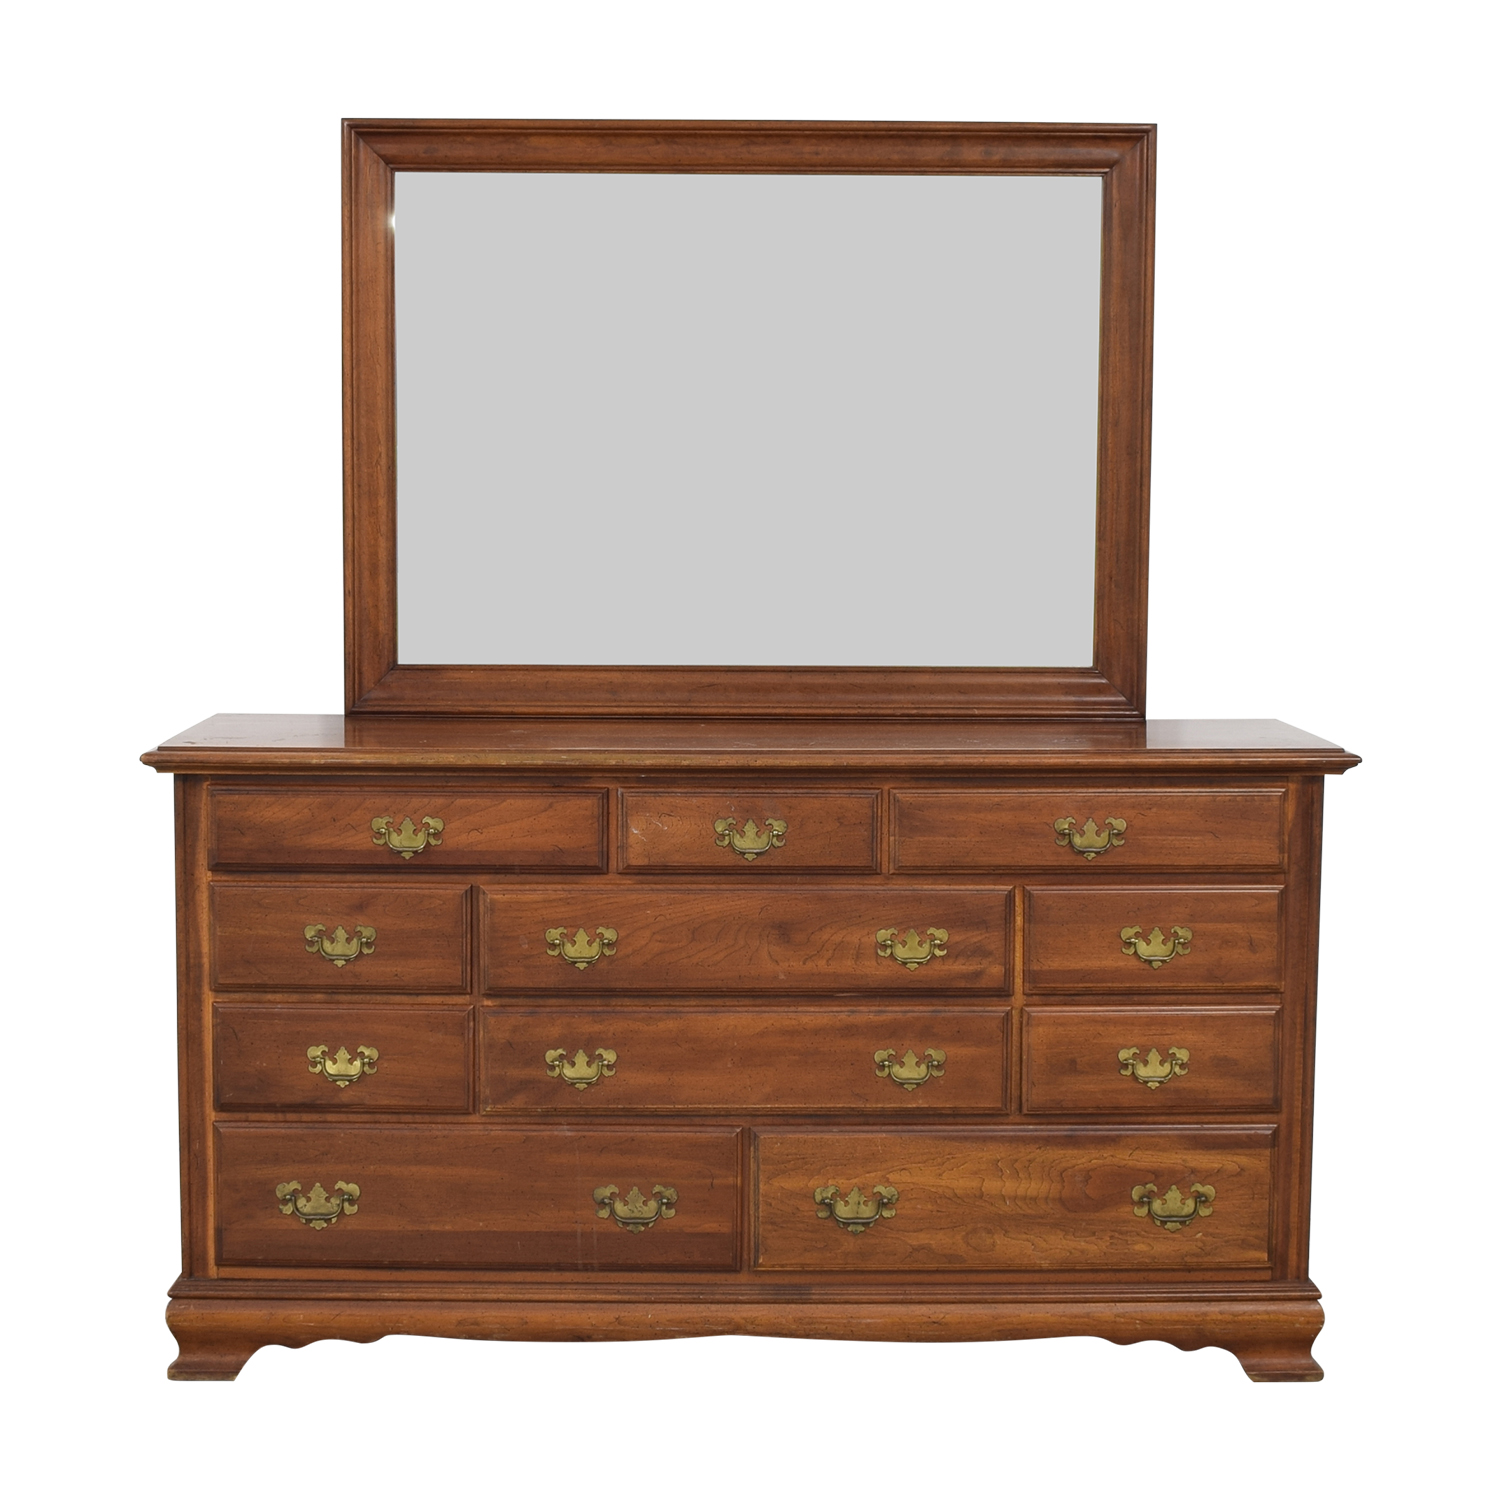 Pennsylvania House Pennsylvania House Dresser with Mirror nyc